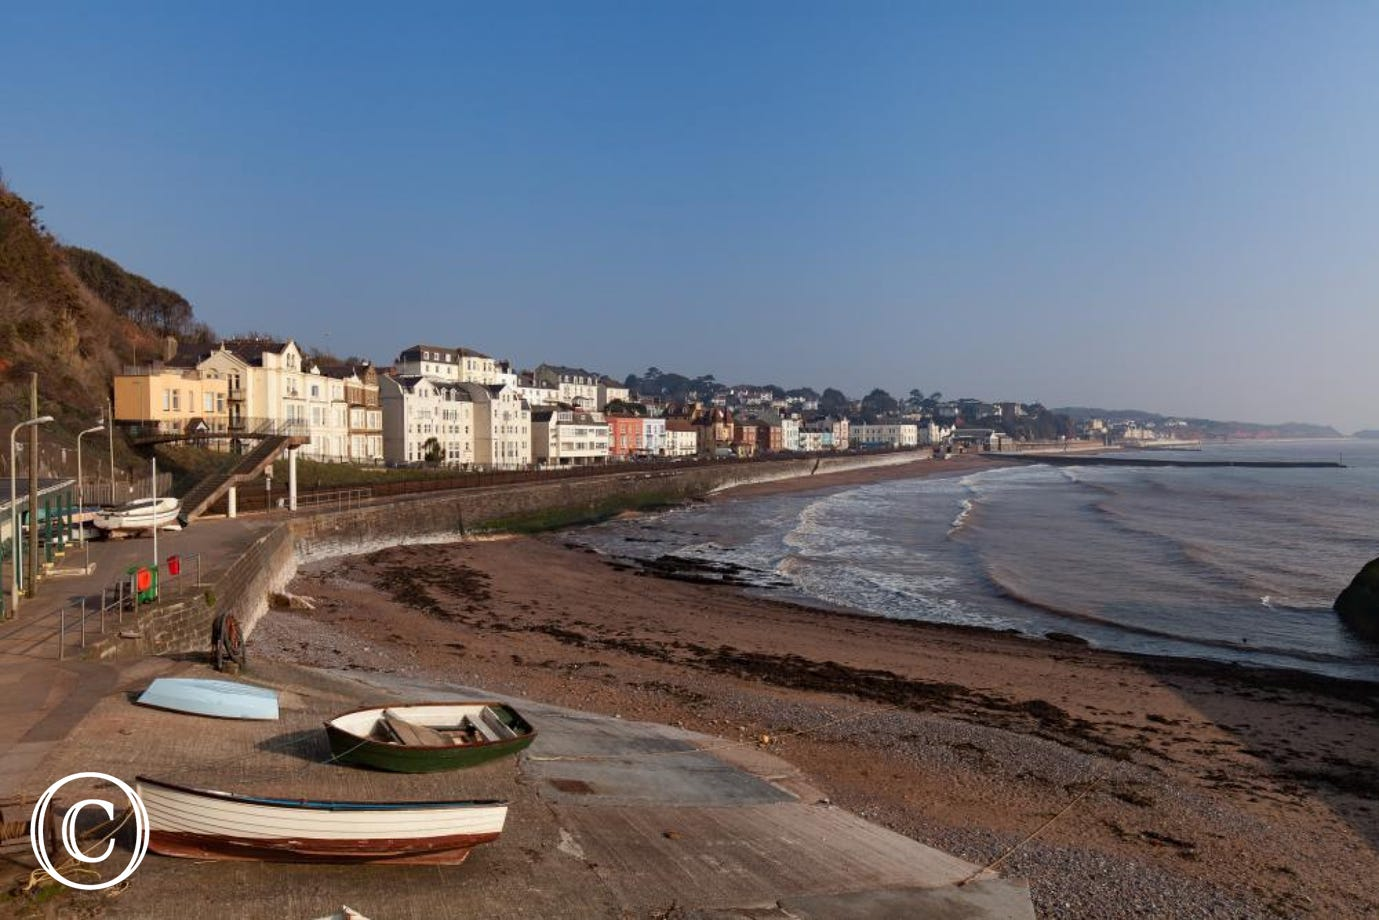 The Seaside Town of Dawlish in South Devon